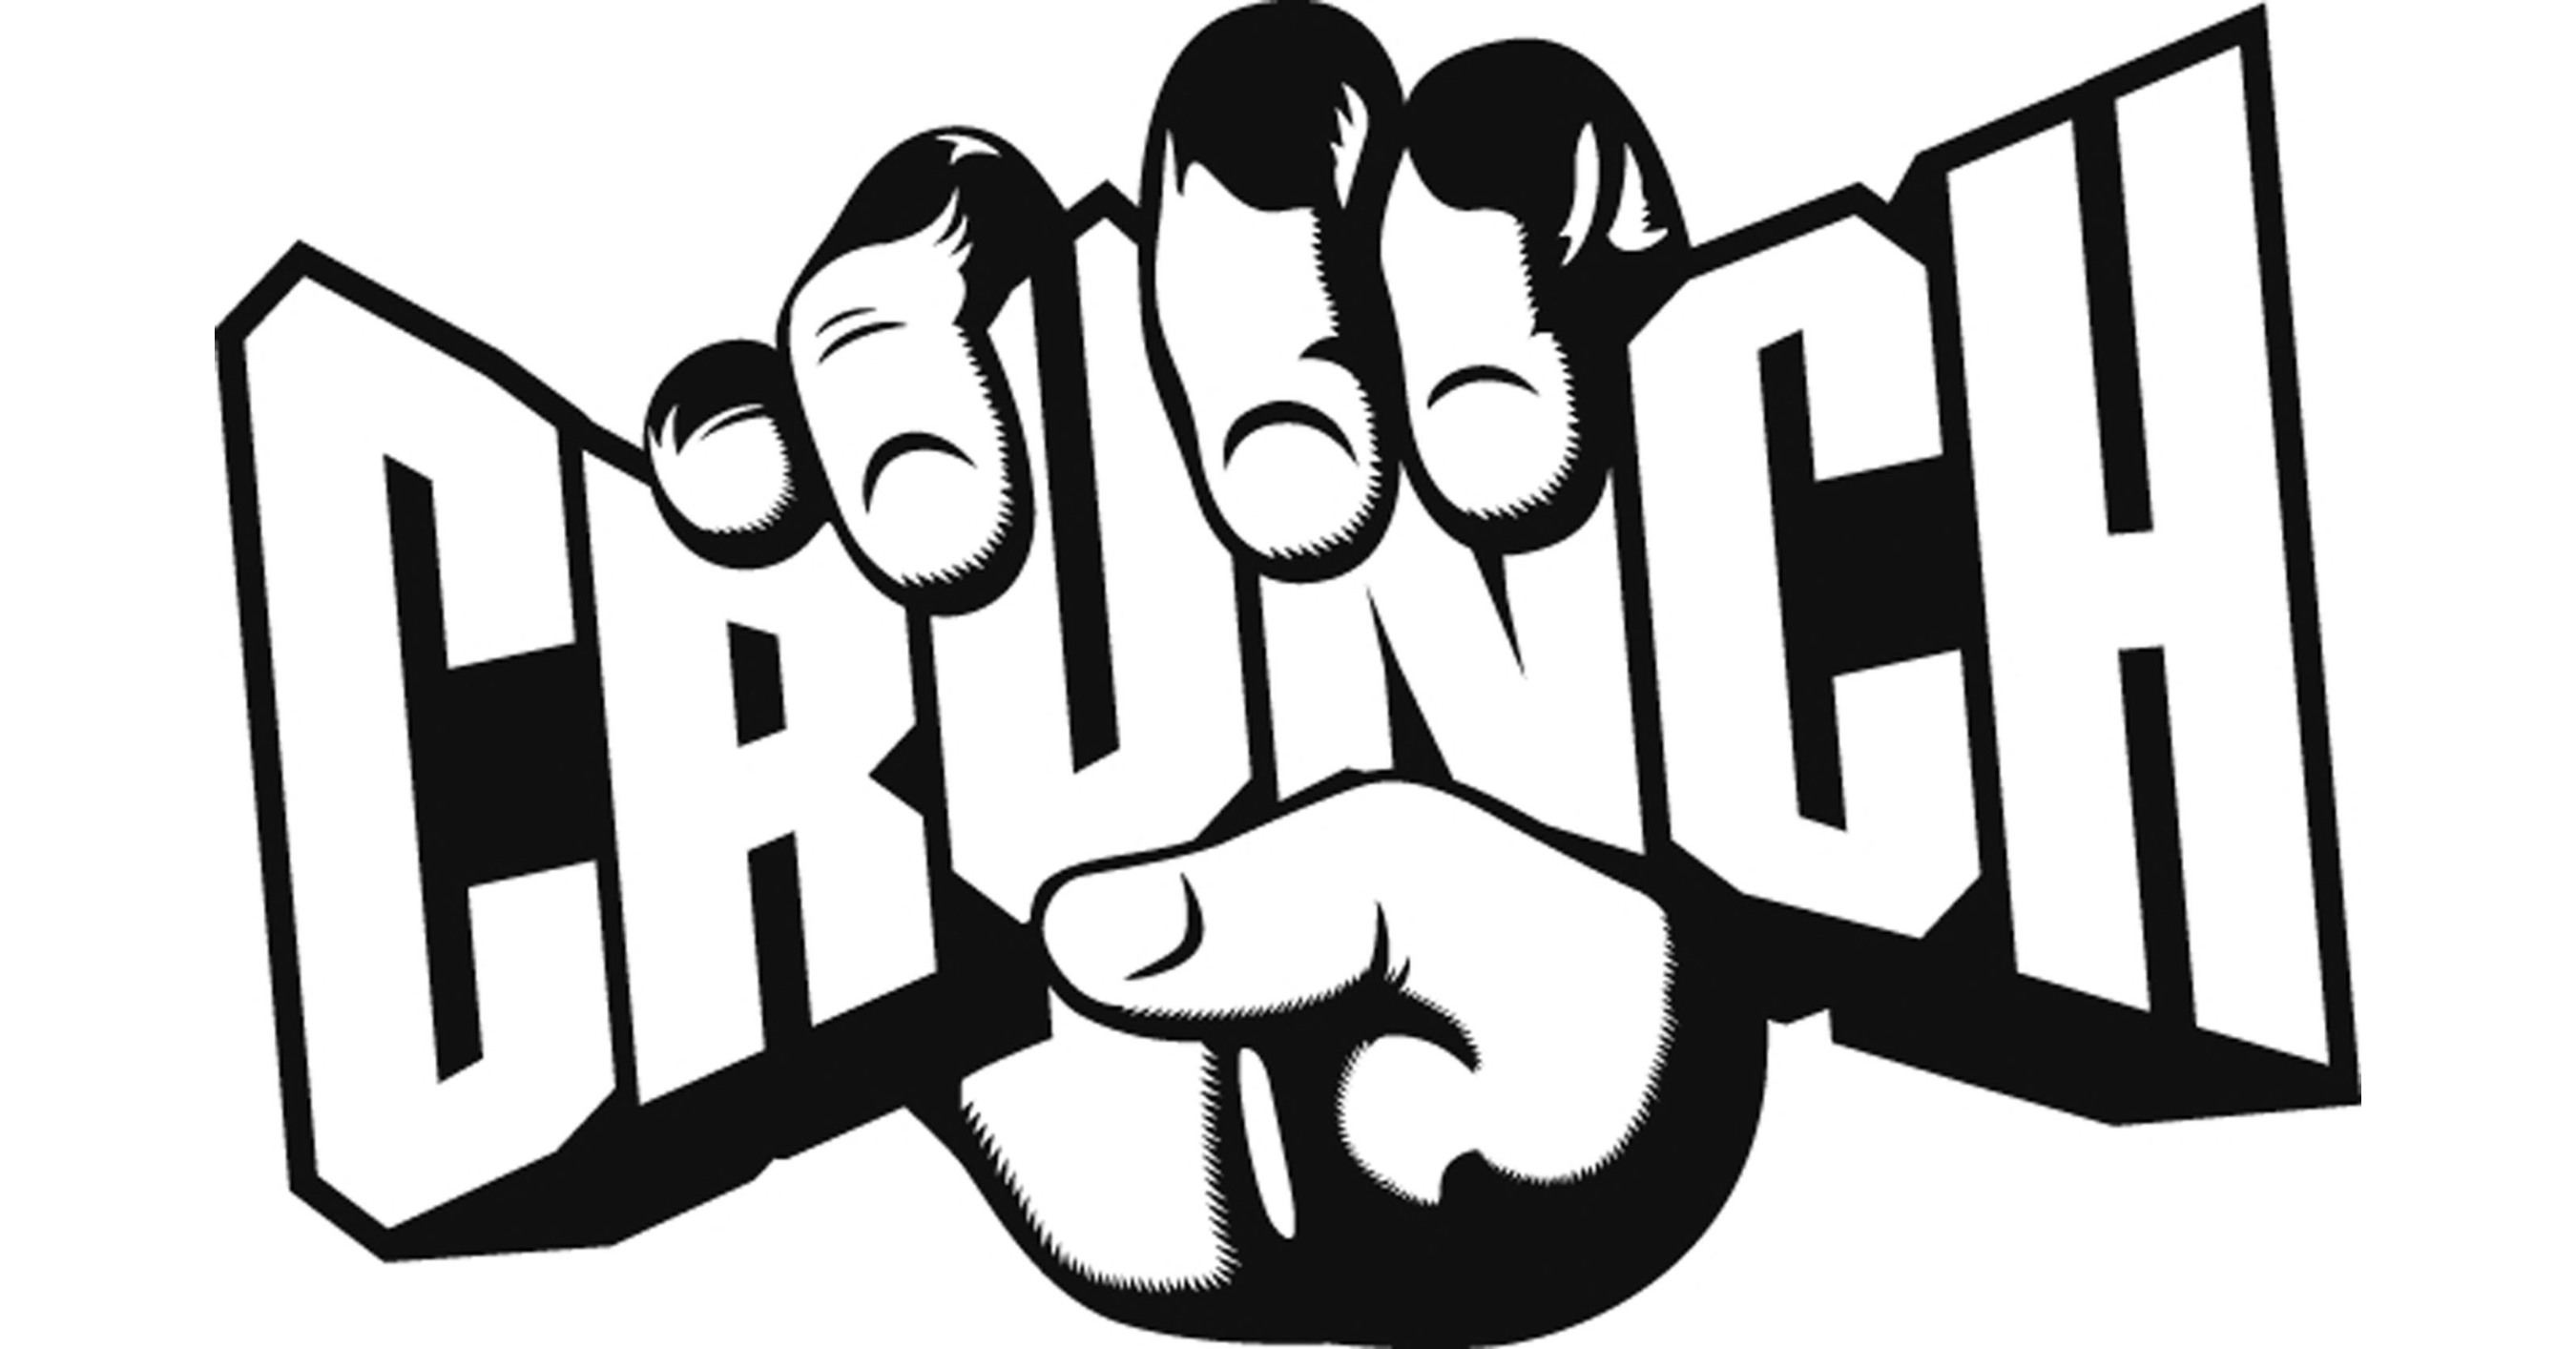 Crunch fitness Logos vector freeuse download